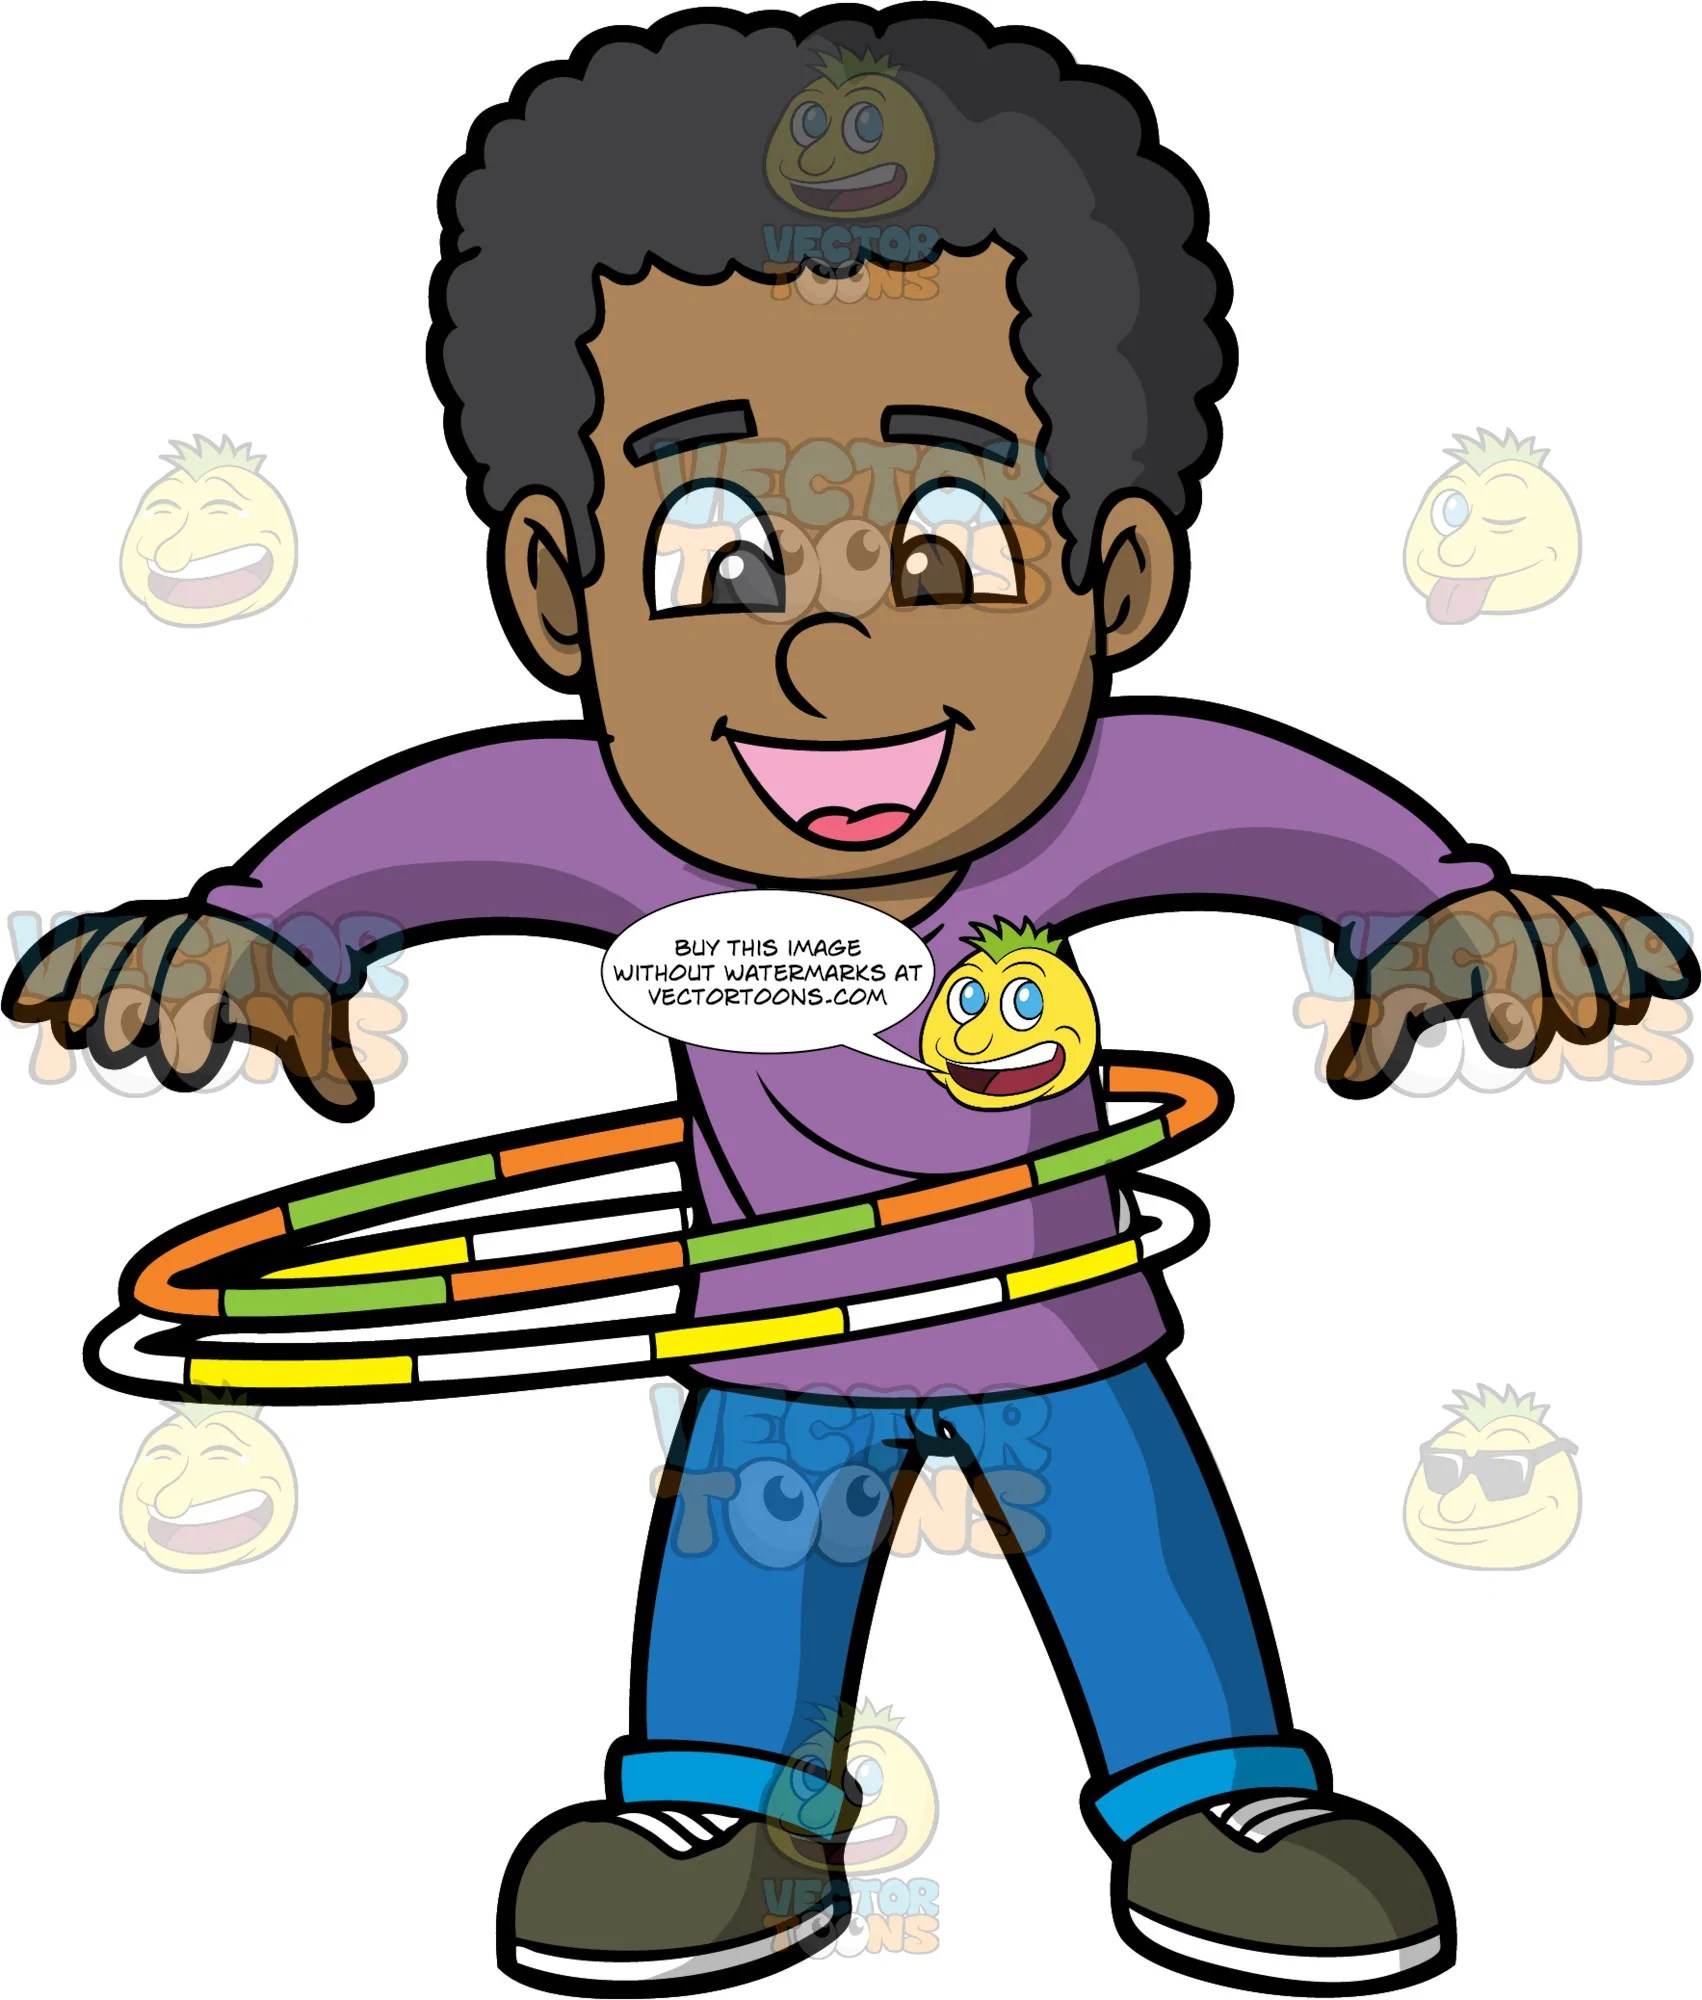 hight resolution of a black boy spinning two hula hoops a black boy with curly hair wearing